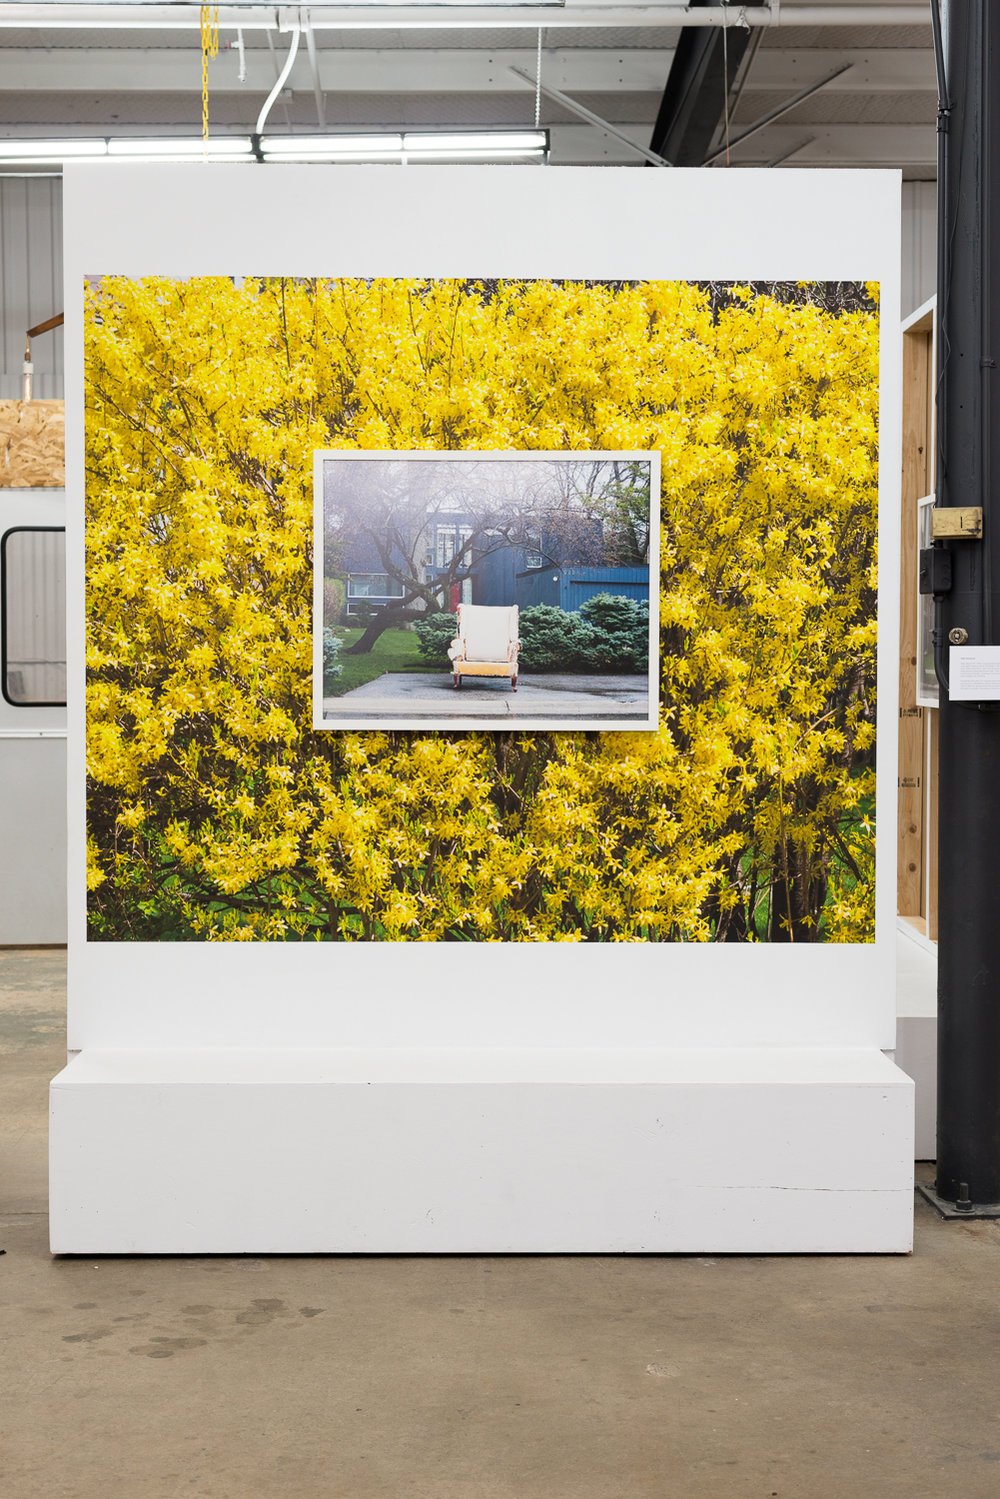 Yellow Chair, 24x30 framed Archival Pigment Print.  Layered over 4ft x 5ft wallpaper detail of Forsythia #2.